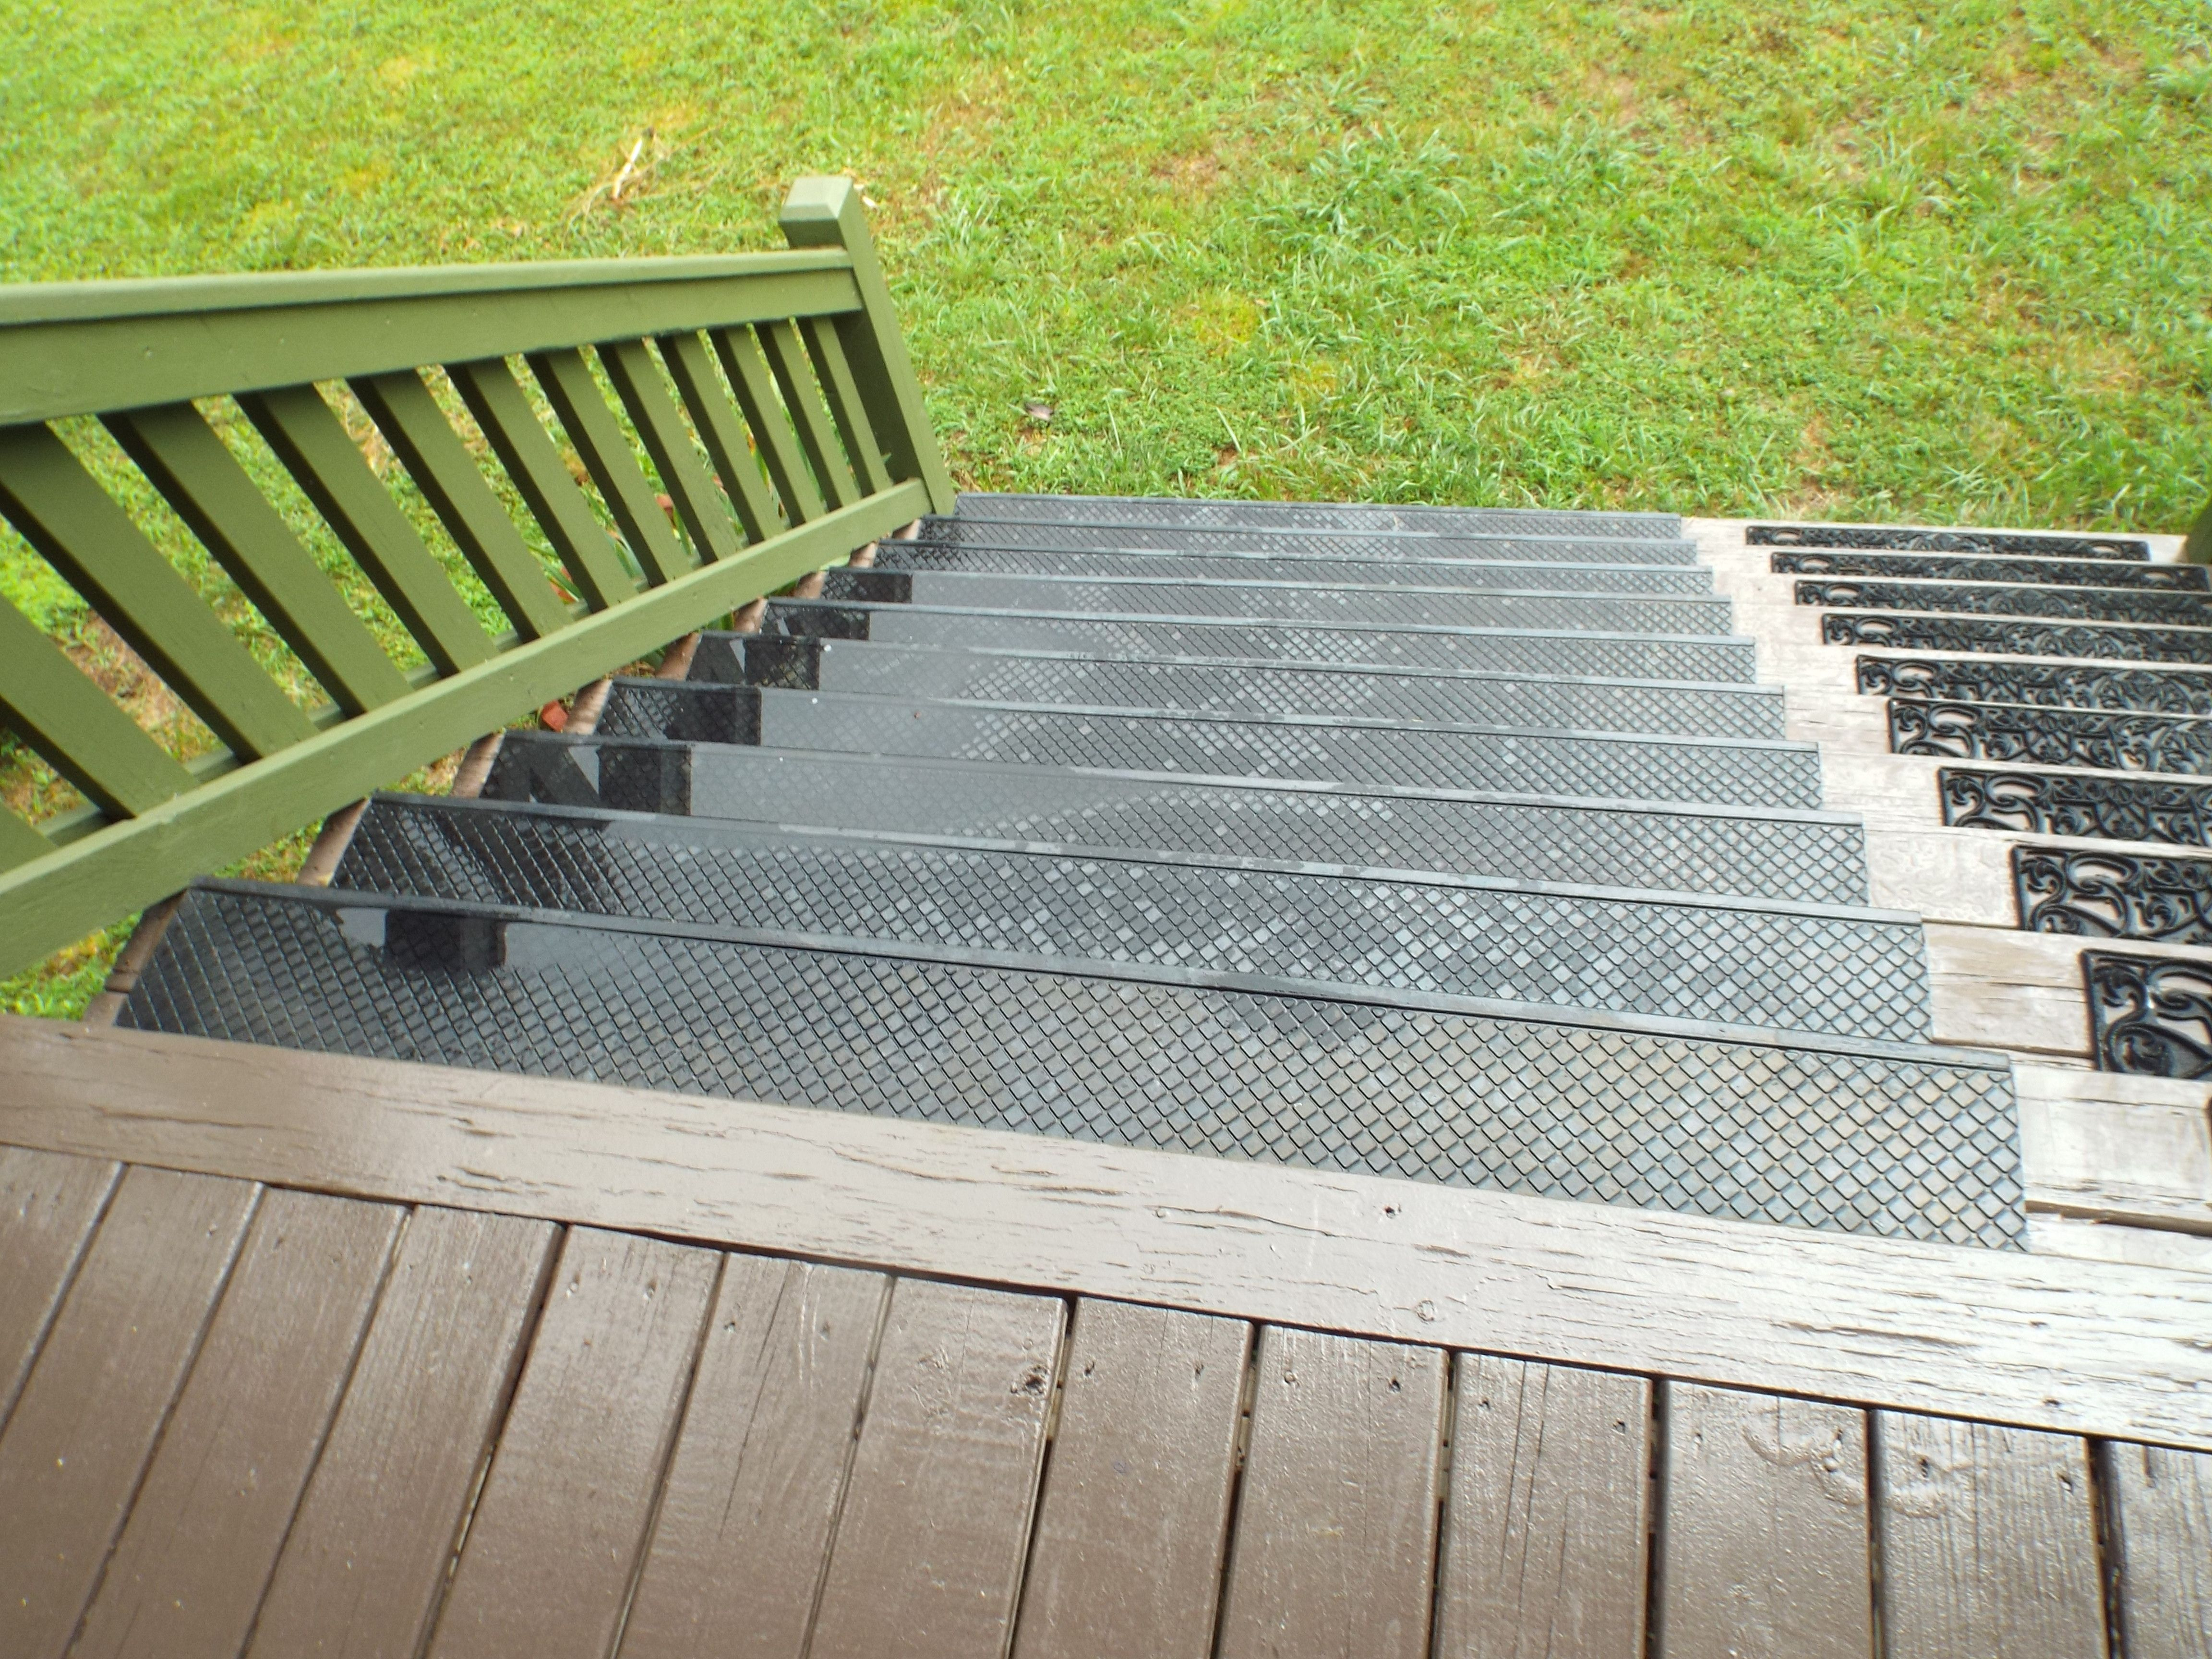 Add Outdoor Stair Treads To Prevent Wood Steps From Getting Worn   Stair Treads For Outdoor Steps   Stone   Stair Railing   Stair Stringers   Slip Resistant   Non Slip